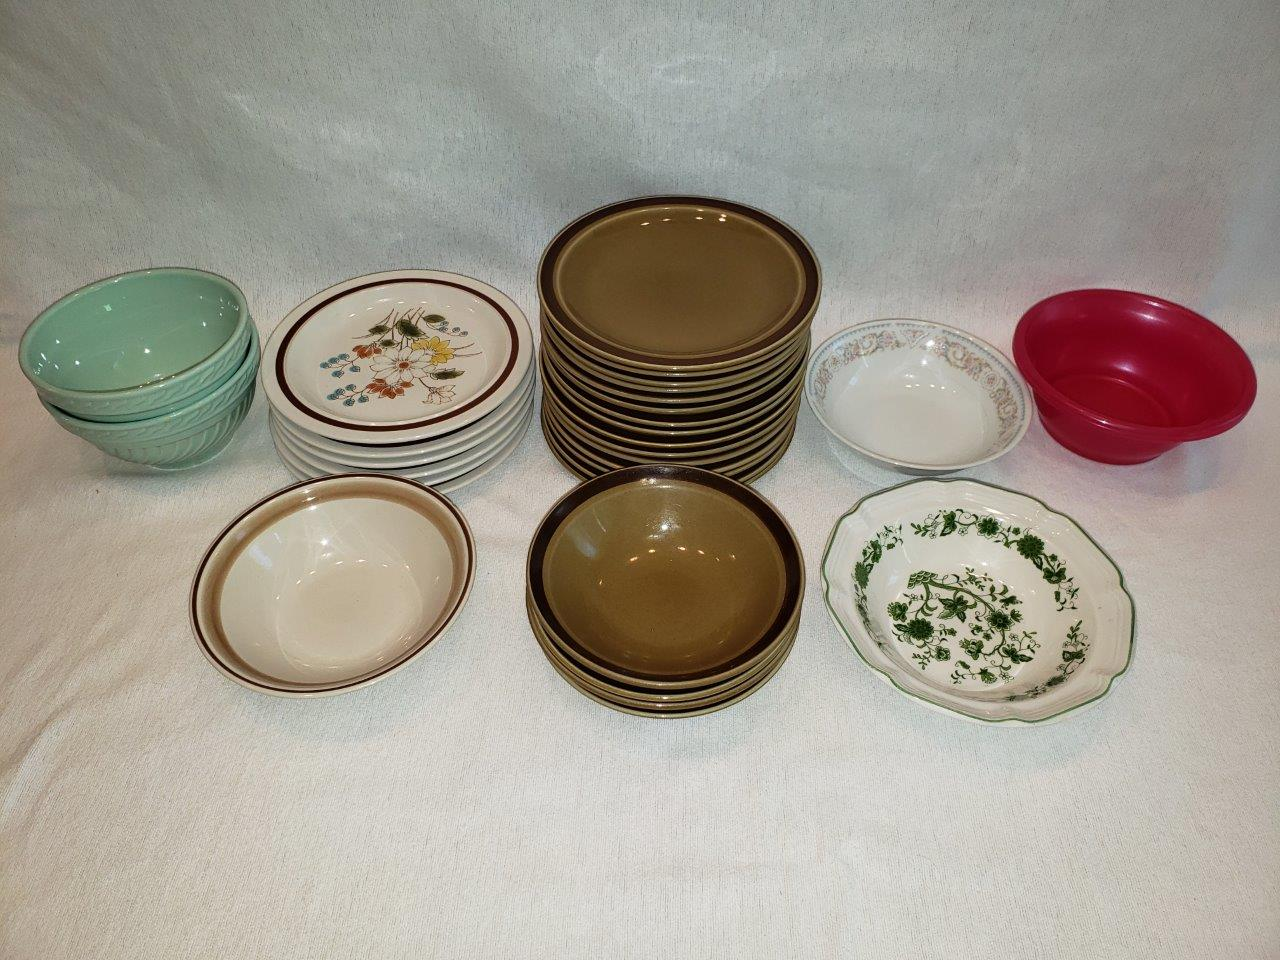 Plates and dishes (china ceramic porcelain) cheap